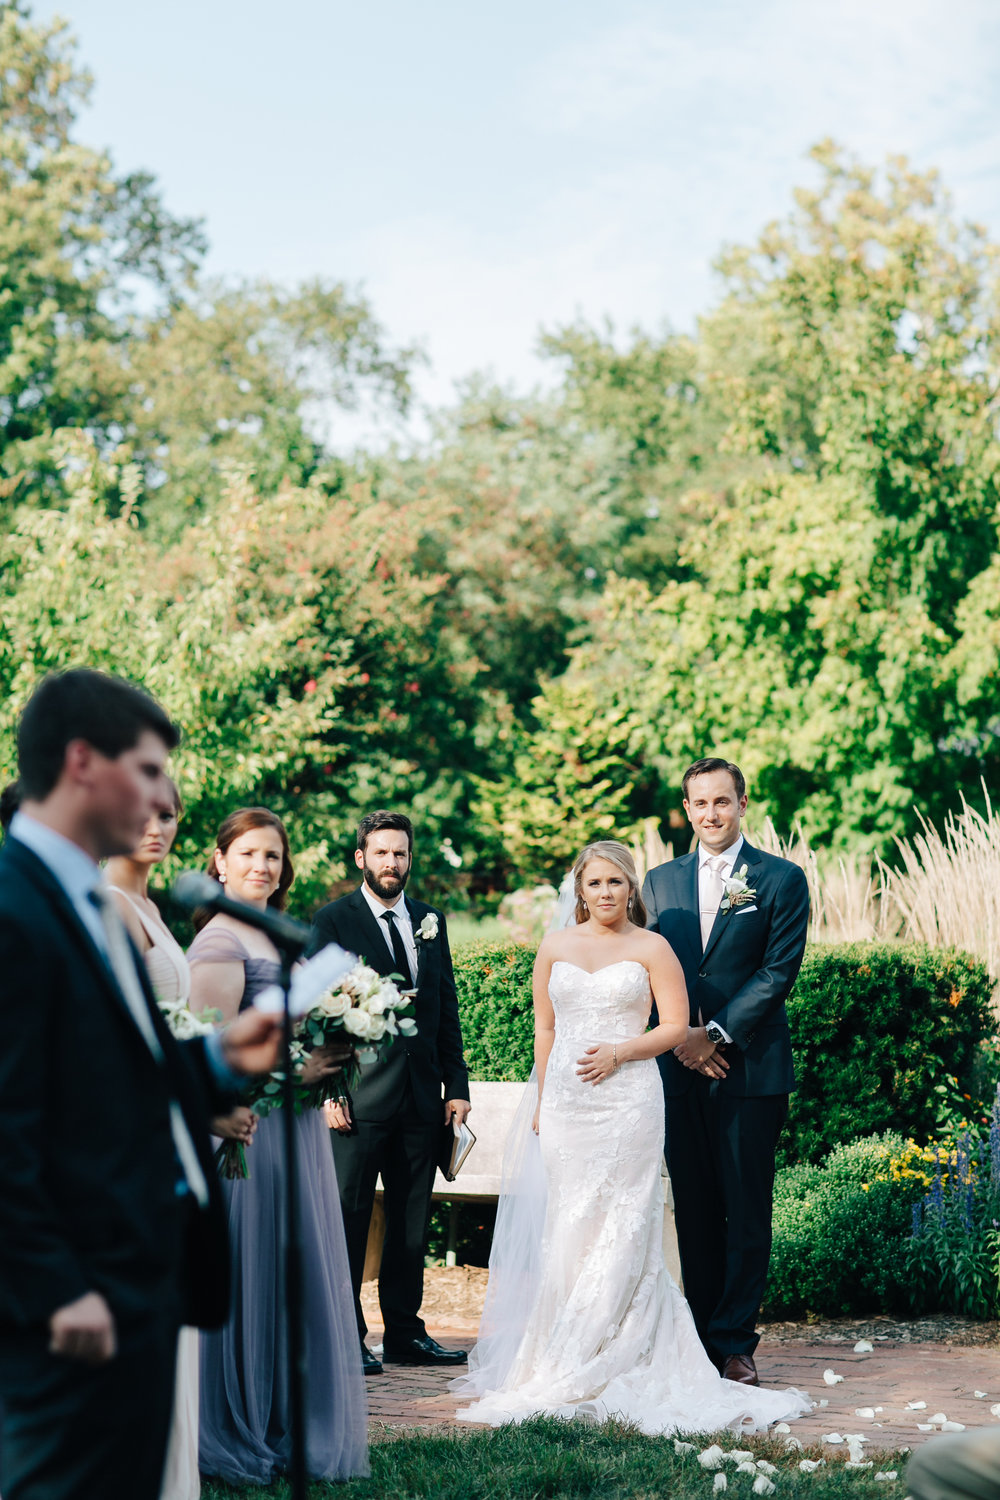 0614_megan_beth_dawson_river_farms_wedding.jpg